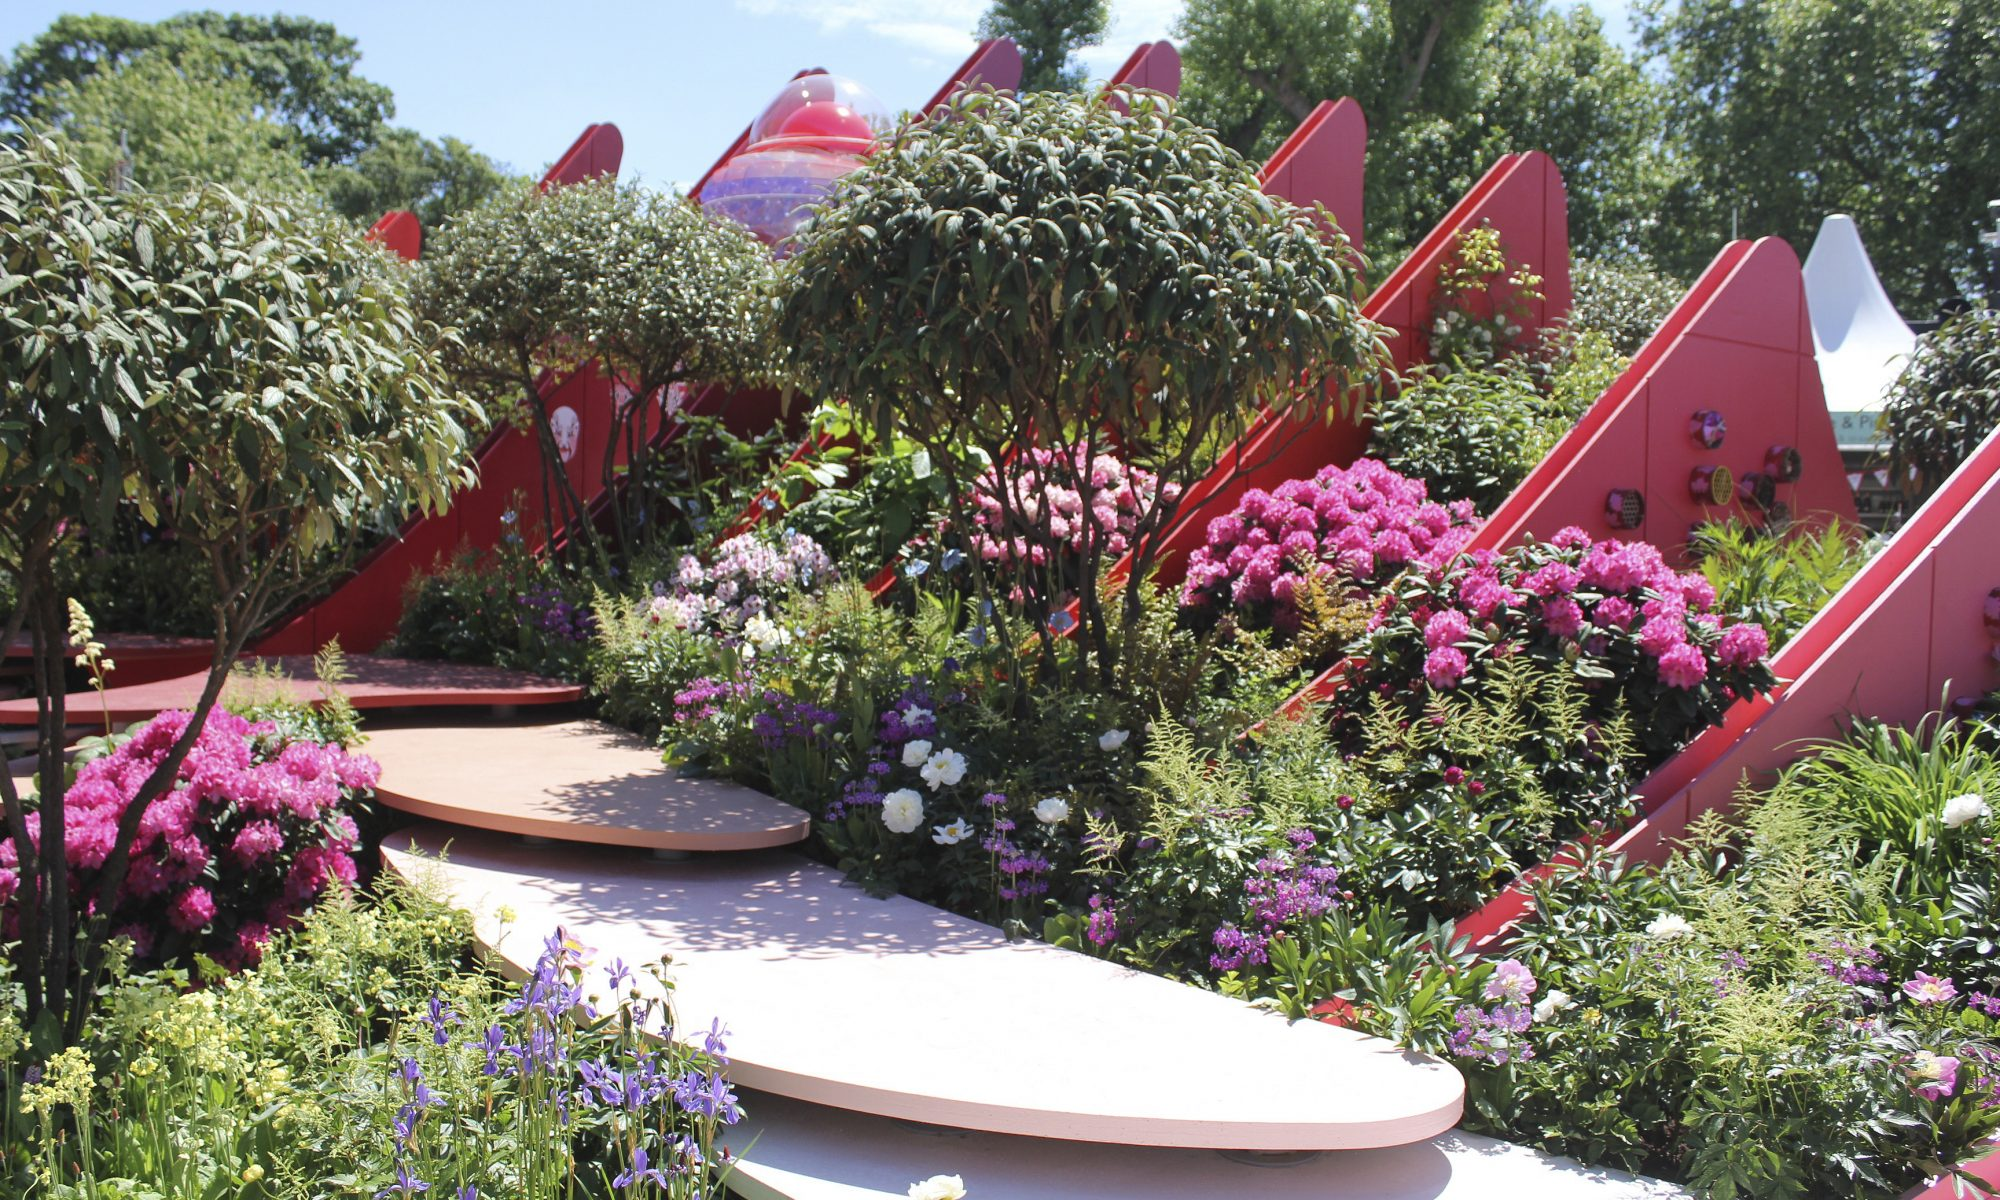 More show gardens from the Chelsea Flower Show